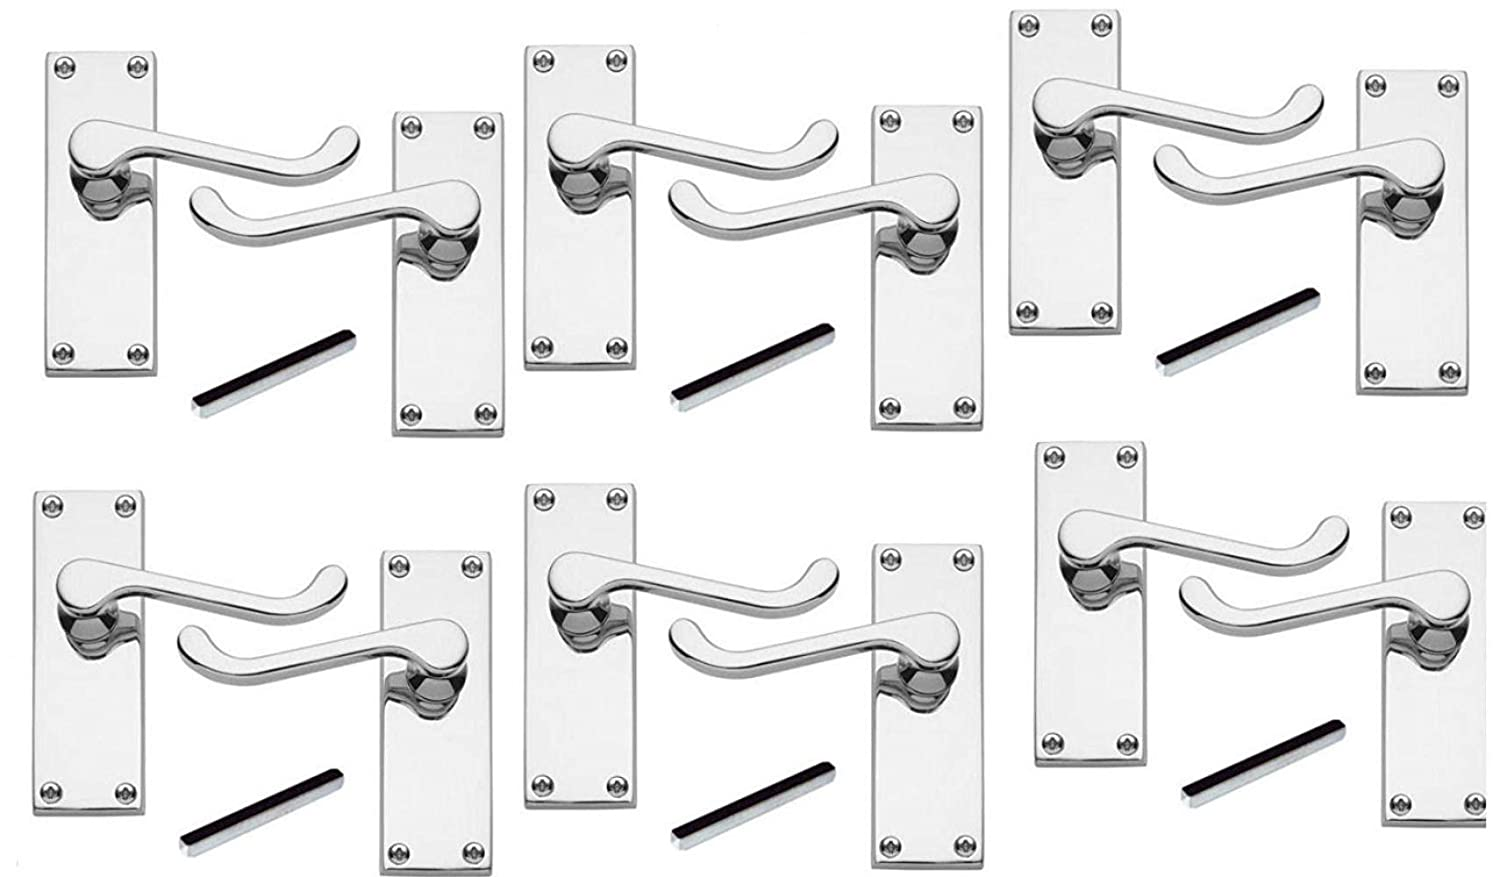 6 x Pairs of Victorian Scroll Polished Chrome Lever Latch Door Handles 120mm Long - Golden Grace Sumison Ltd